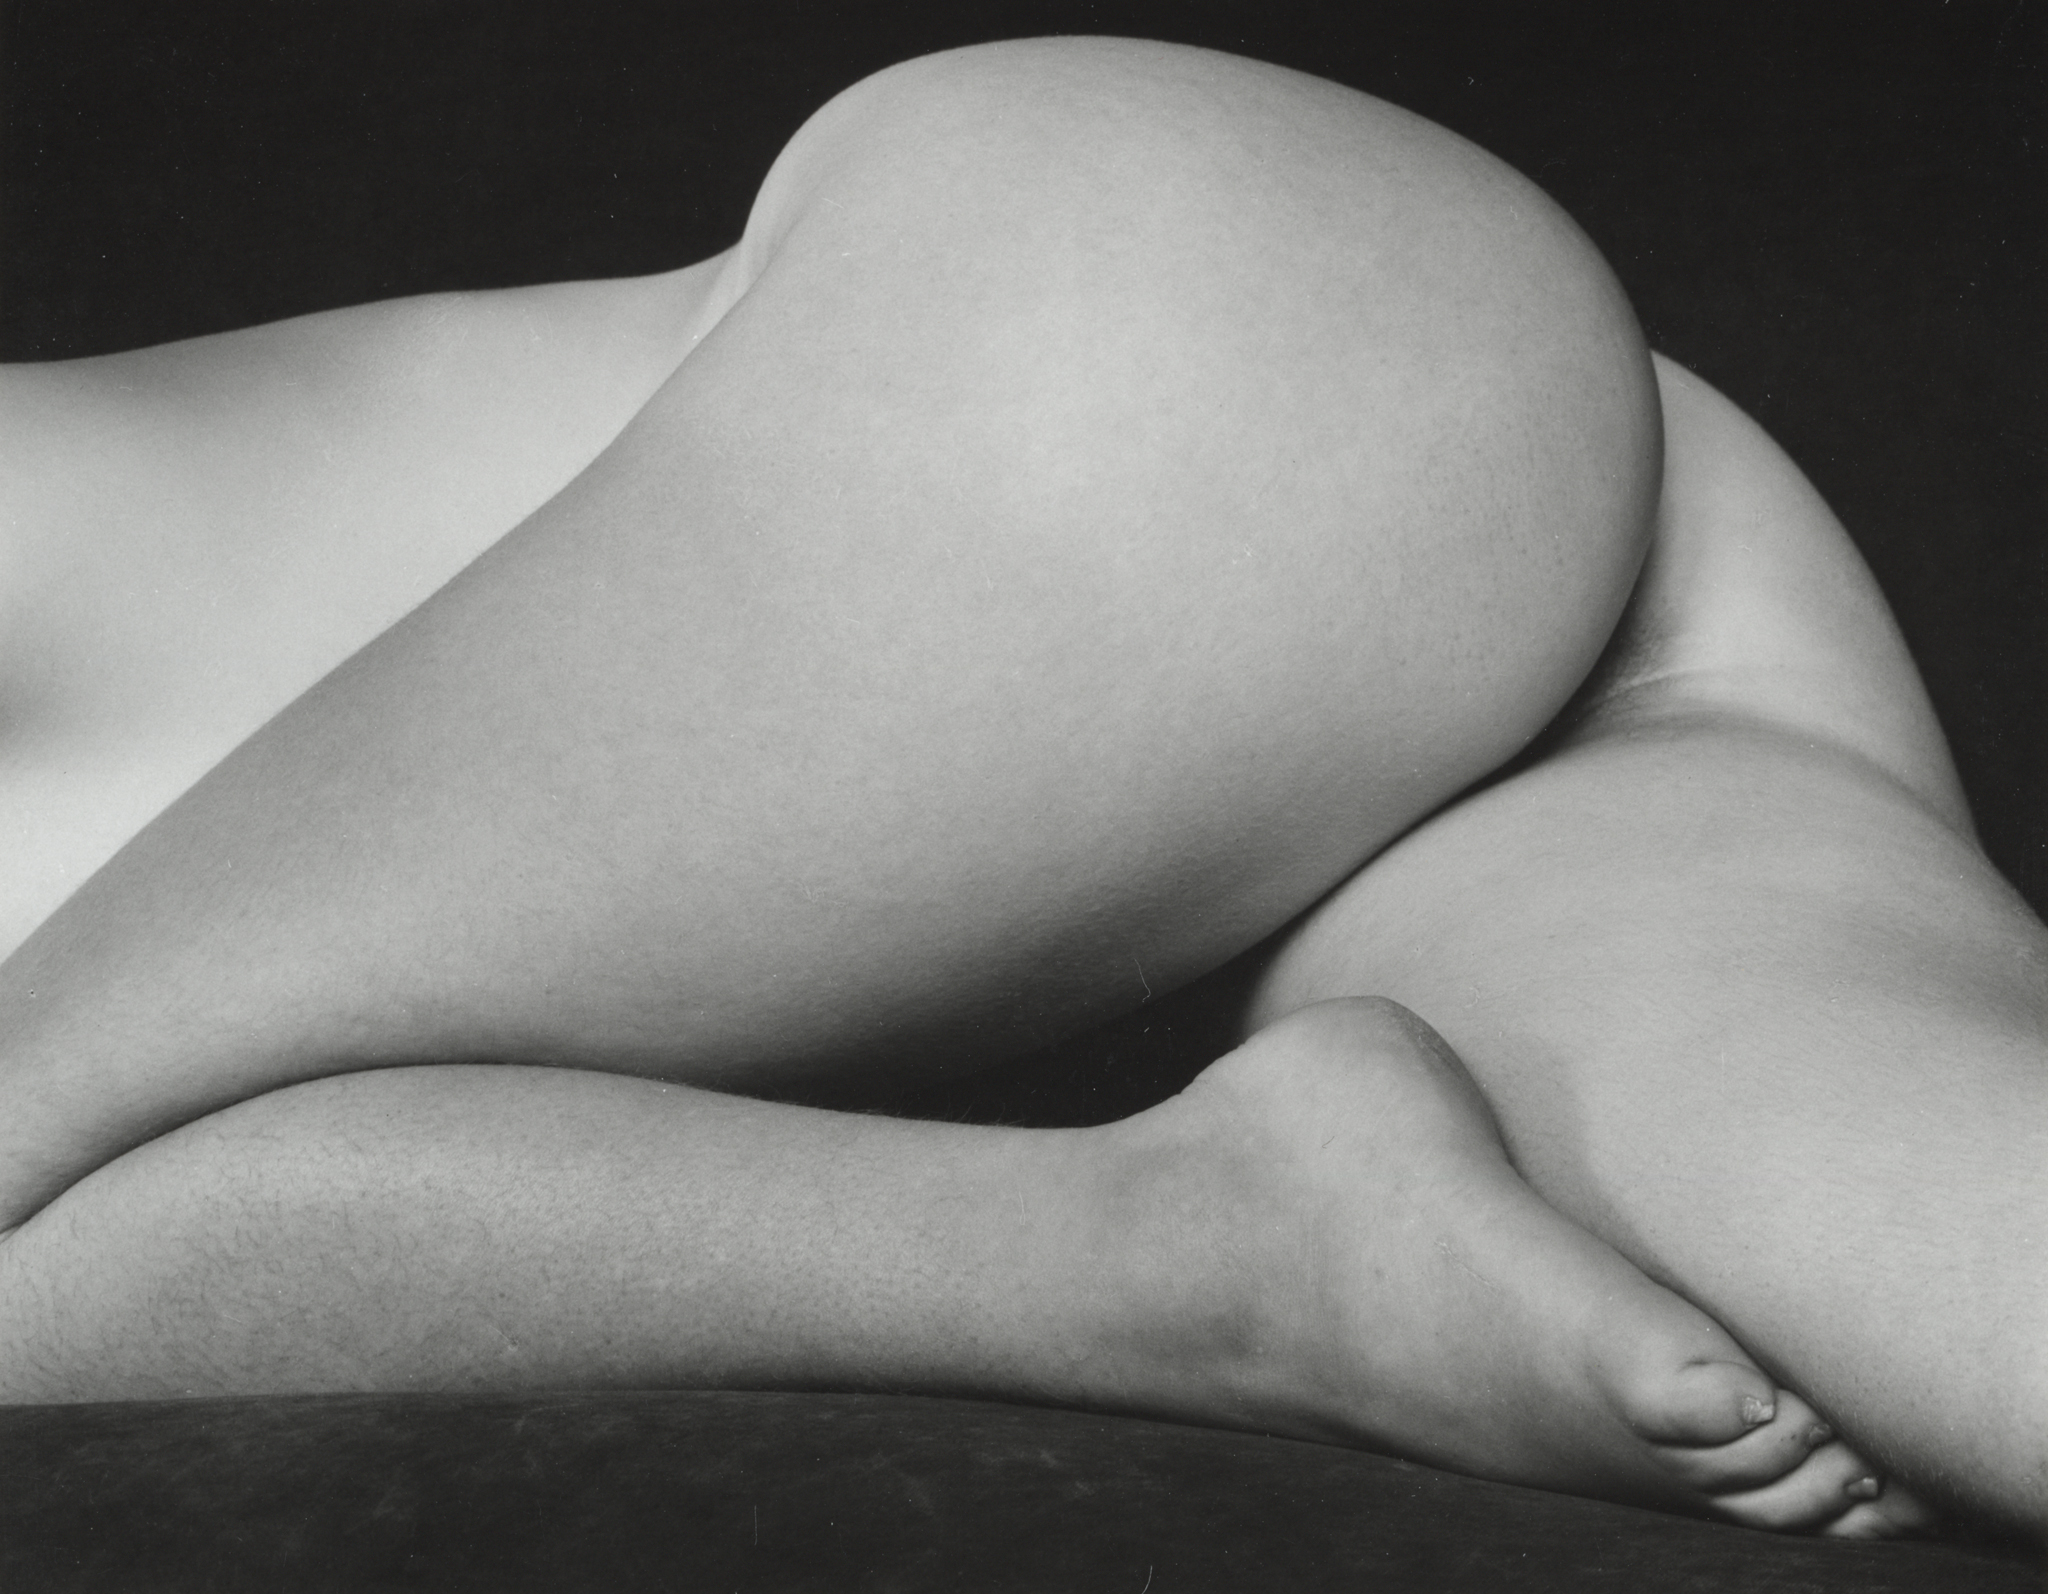 Edward Weston, Nude, 1934 ©1981 Center for Creative Photography, Arizona Board of Regents